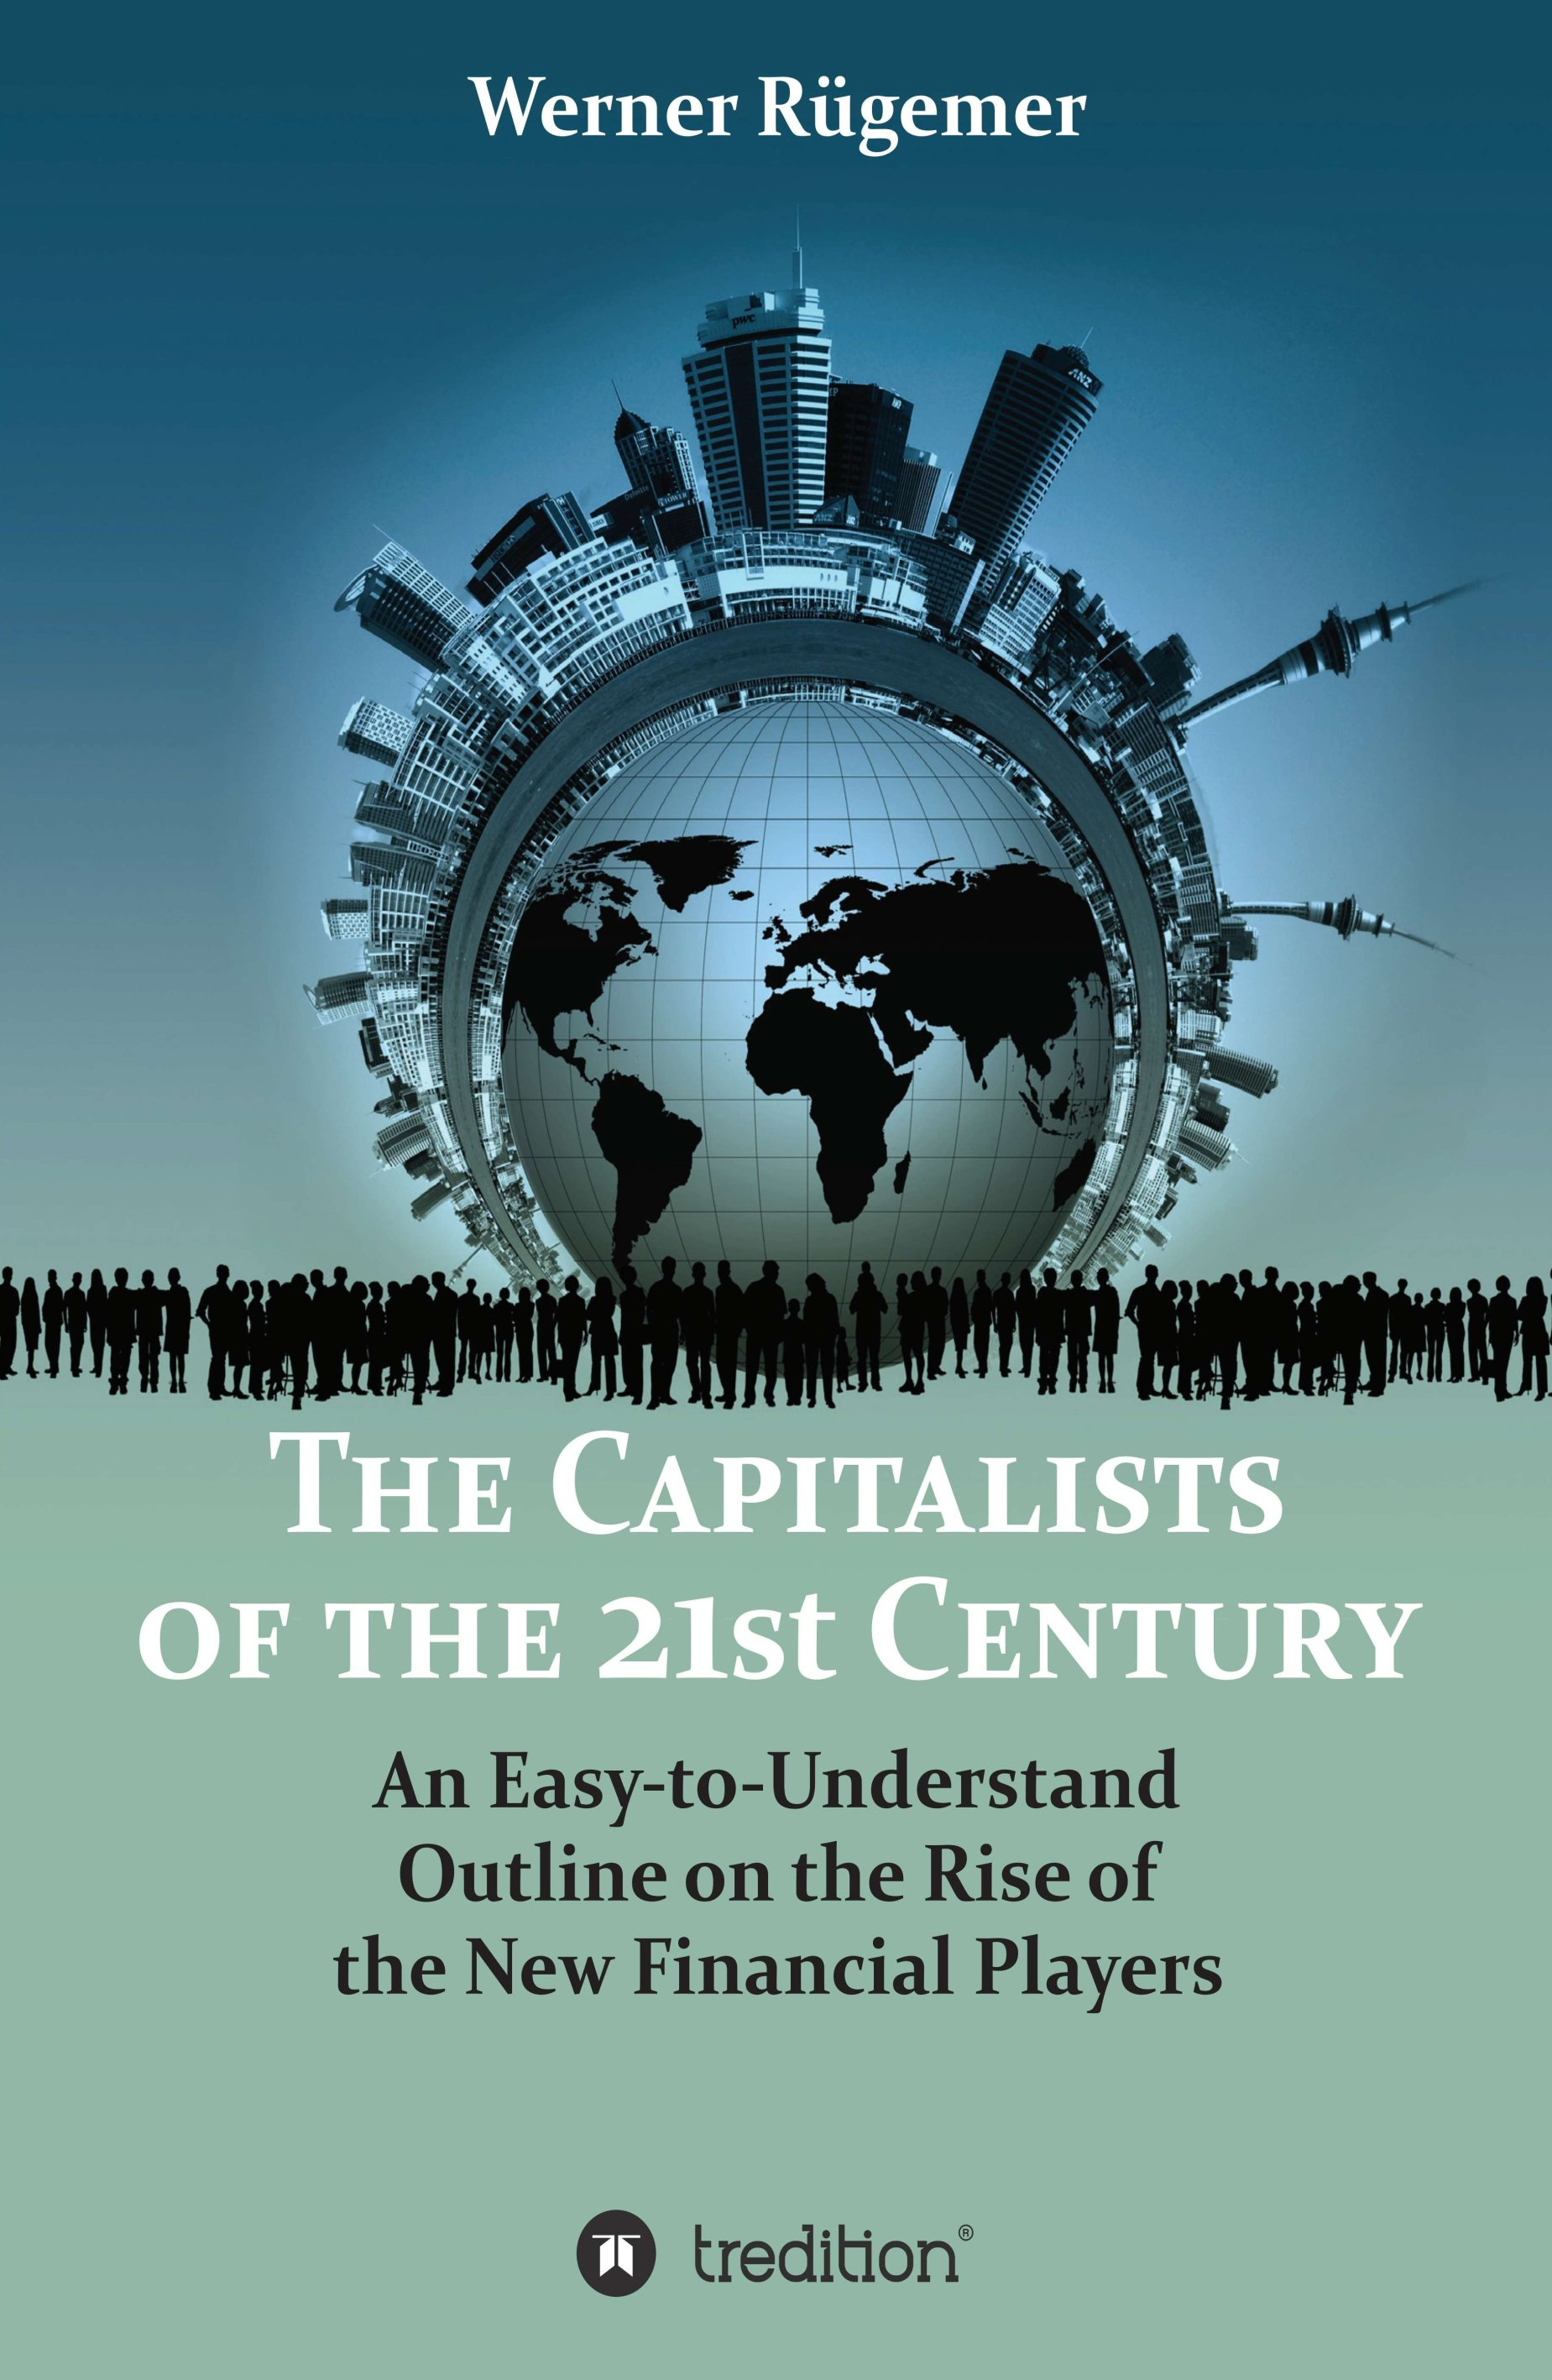 The Capitalists of the 21st Century - An Easy-to-Understand Outline on the Rise of New Financial Players